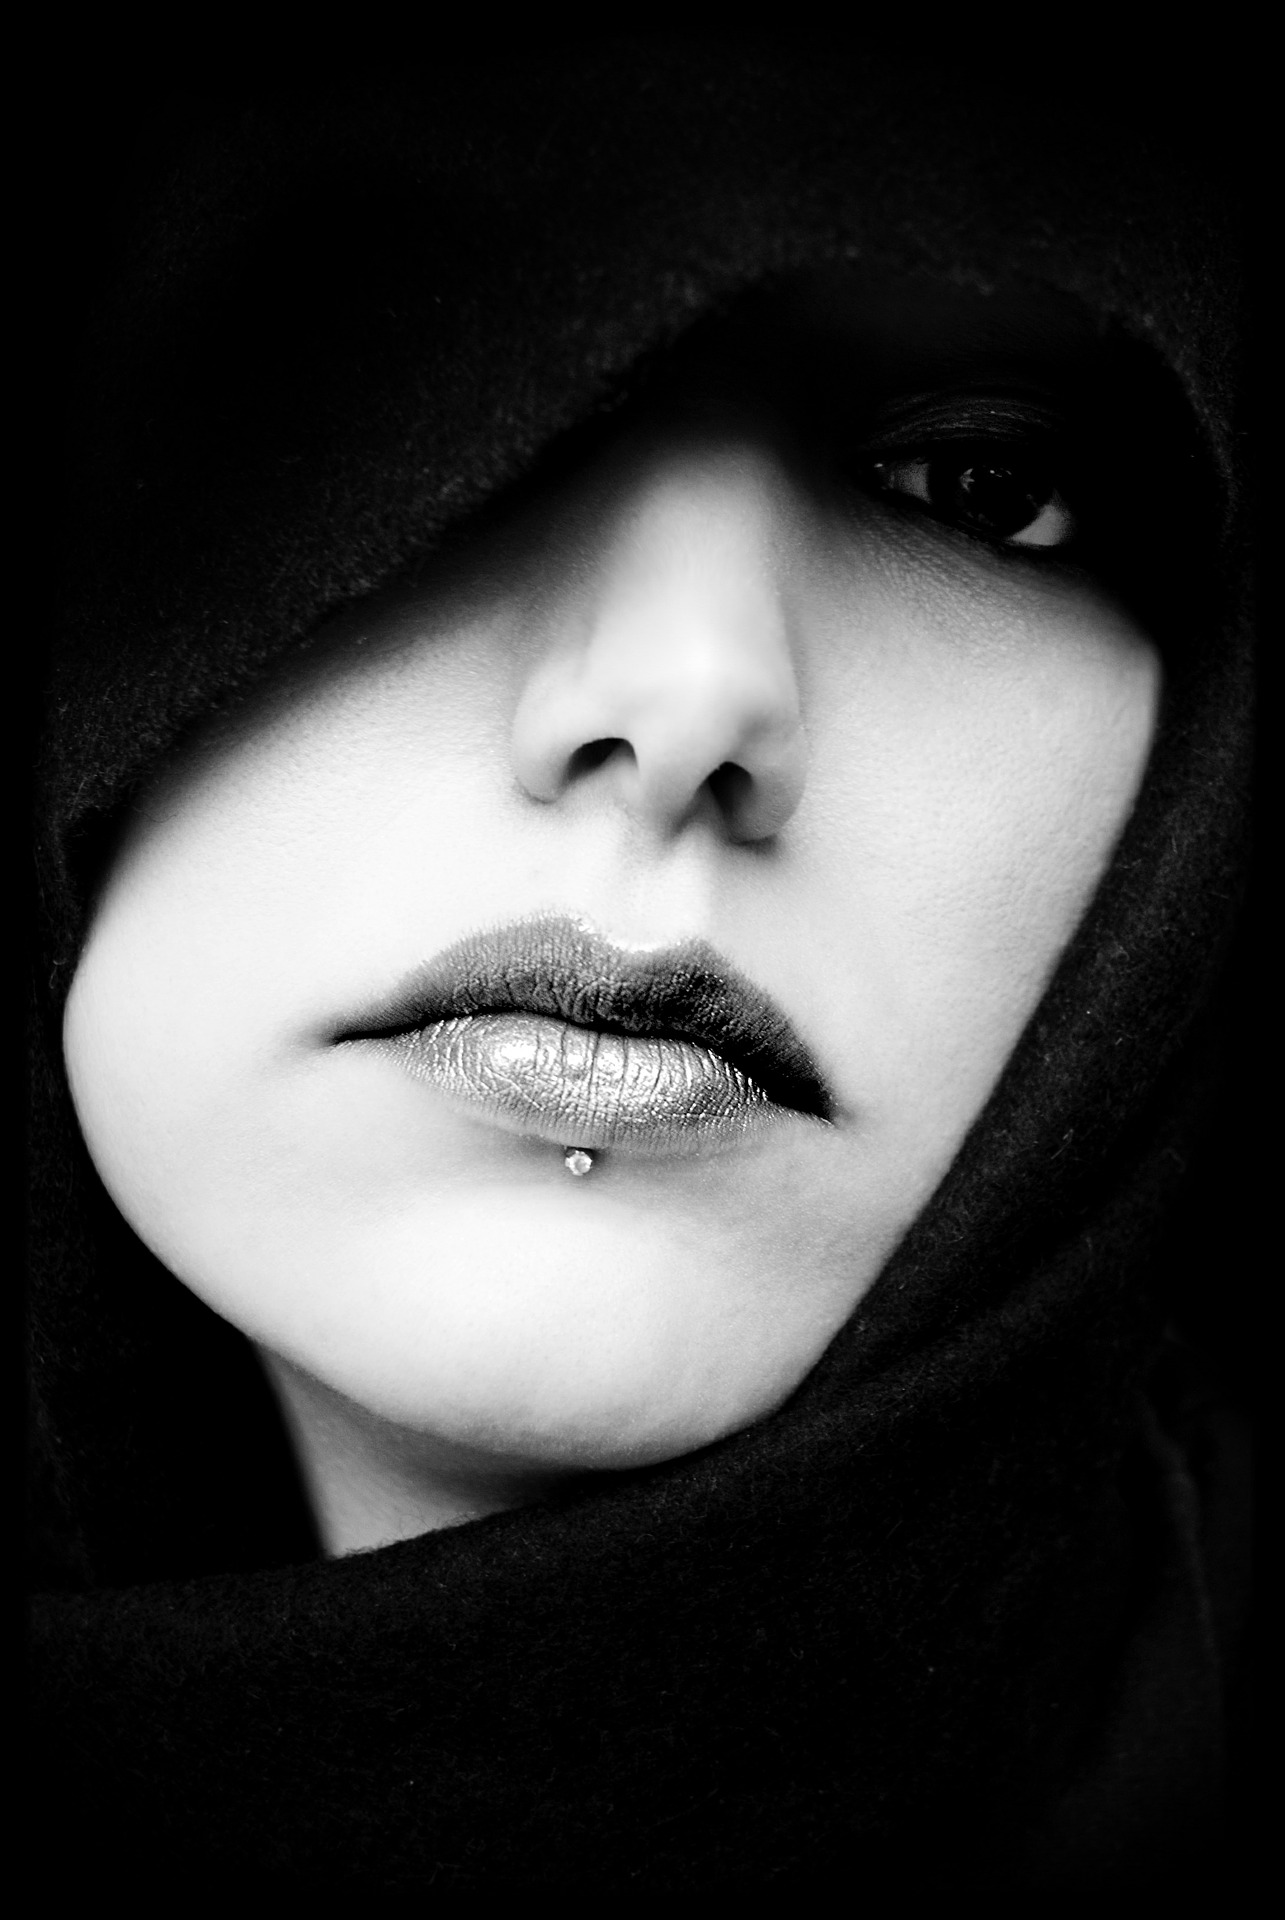 woman's face black and white